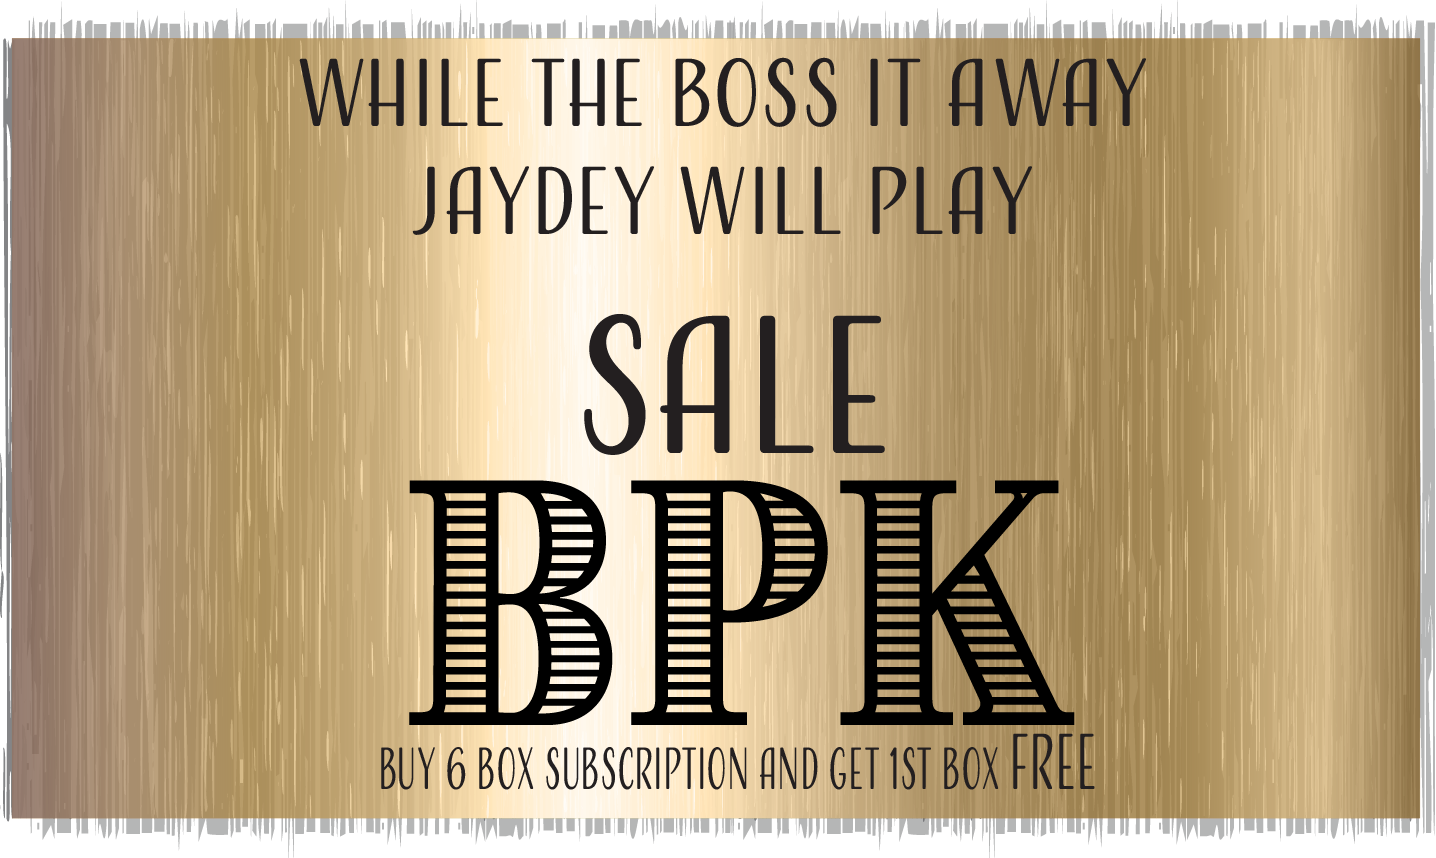 While to Boss is Away SALE - BPK